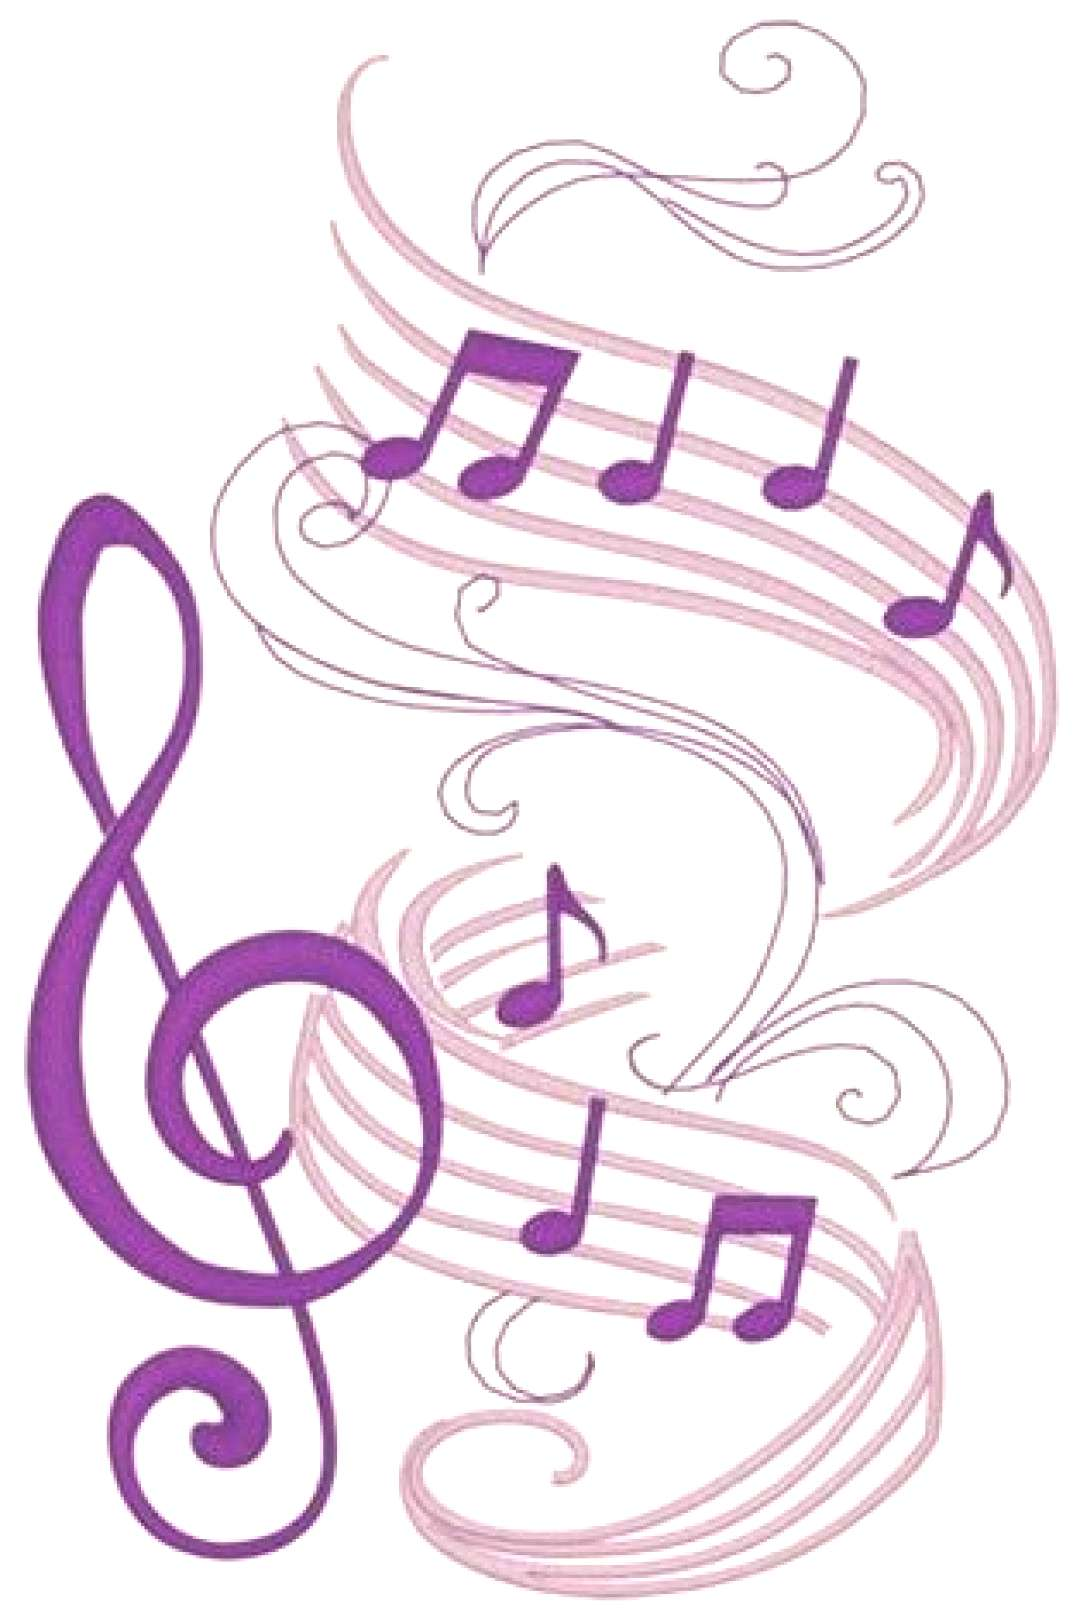 Graceful Music Notes Embroidery Designs, Machine Embroidery Designs at